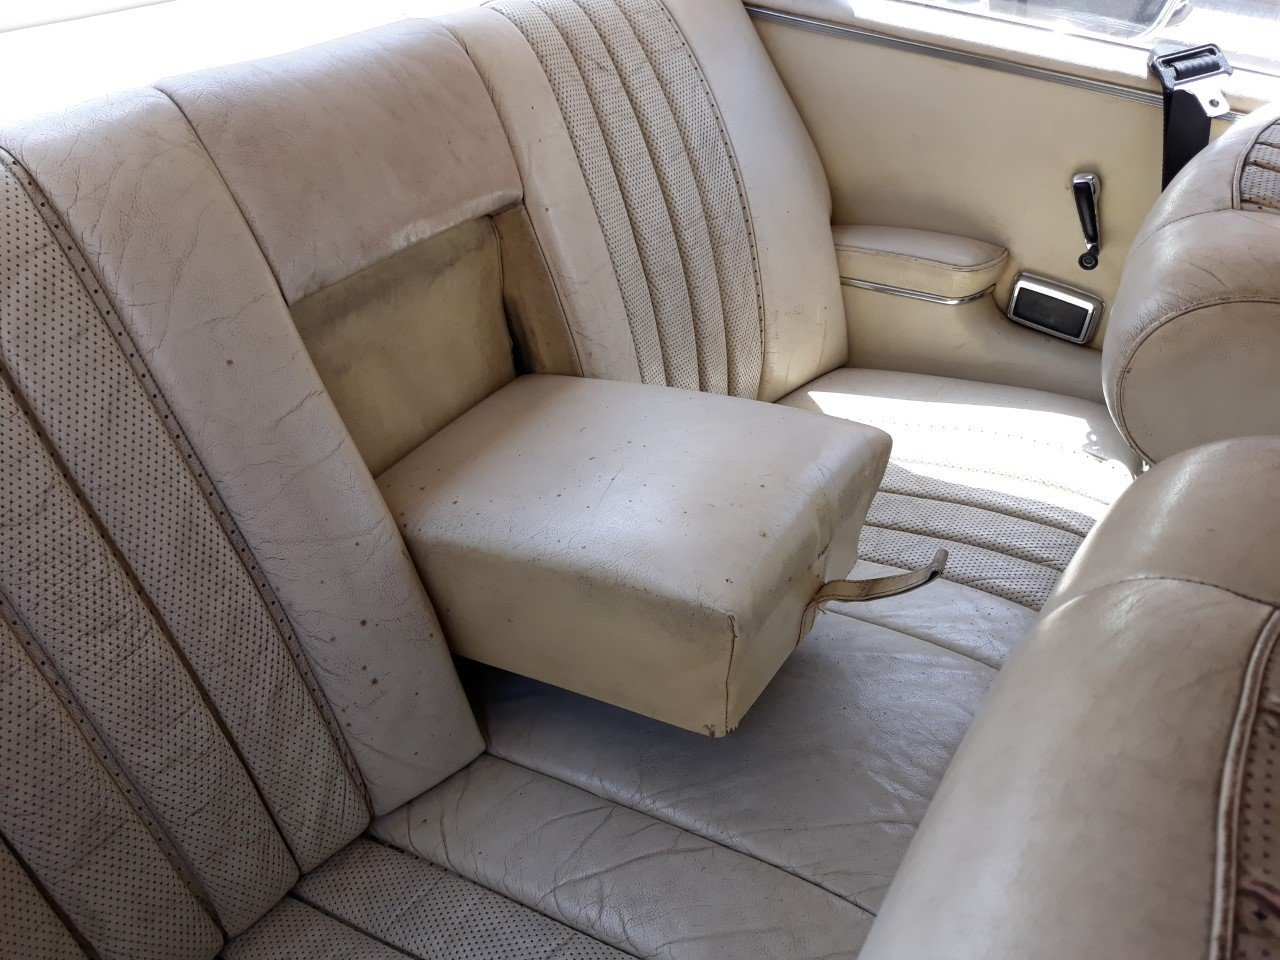 1967 LHD-Mercedes Benz 250SE Coupe-manual transmission For Sale (picture 6 of 6)